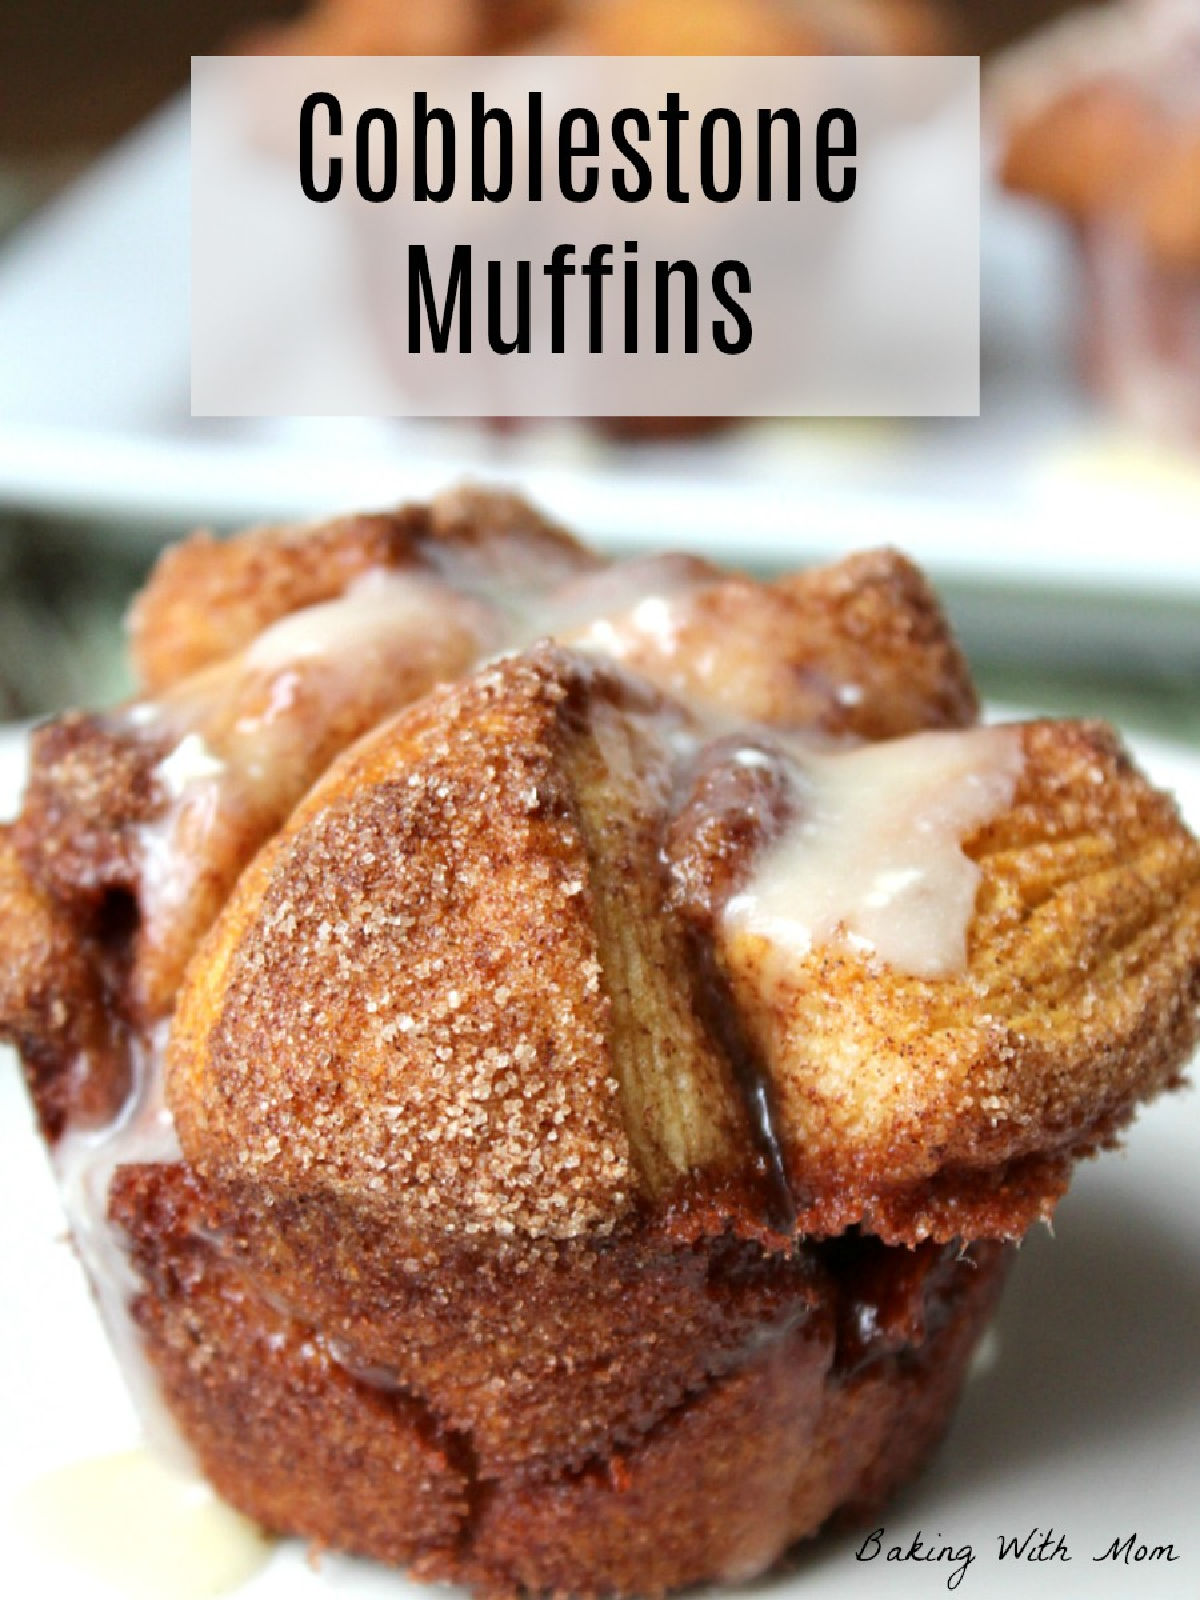 cinnamon sugar muffin sitting on a white plate drizzled with white frosting.